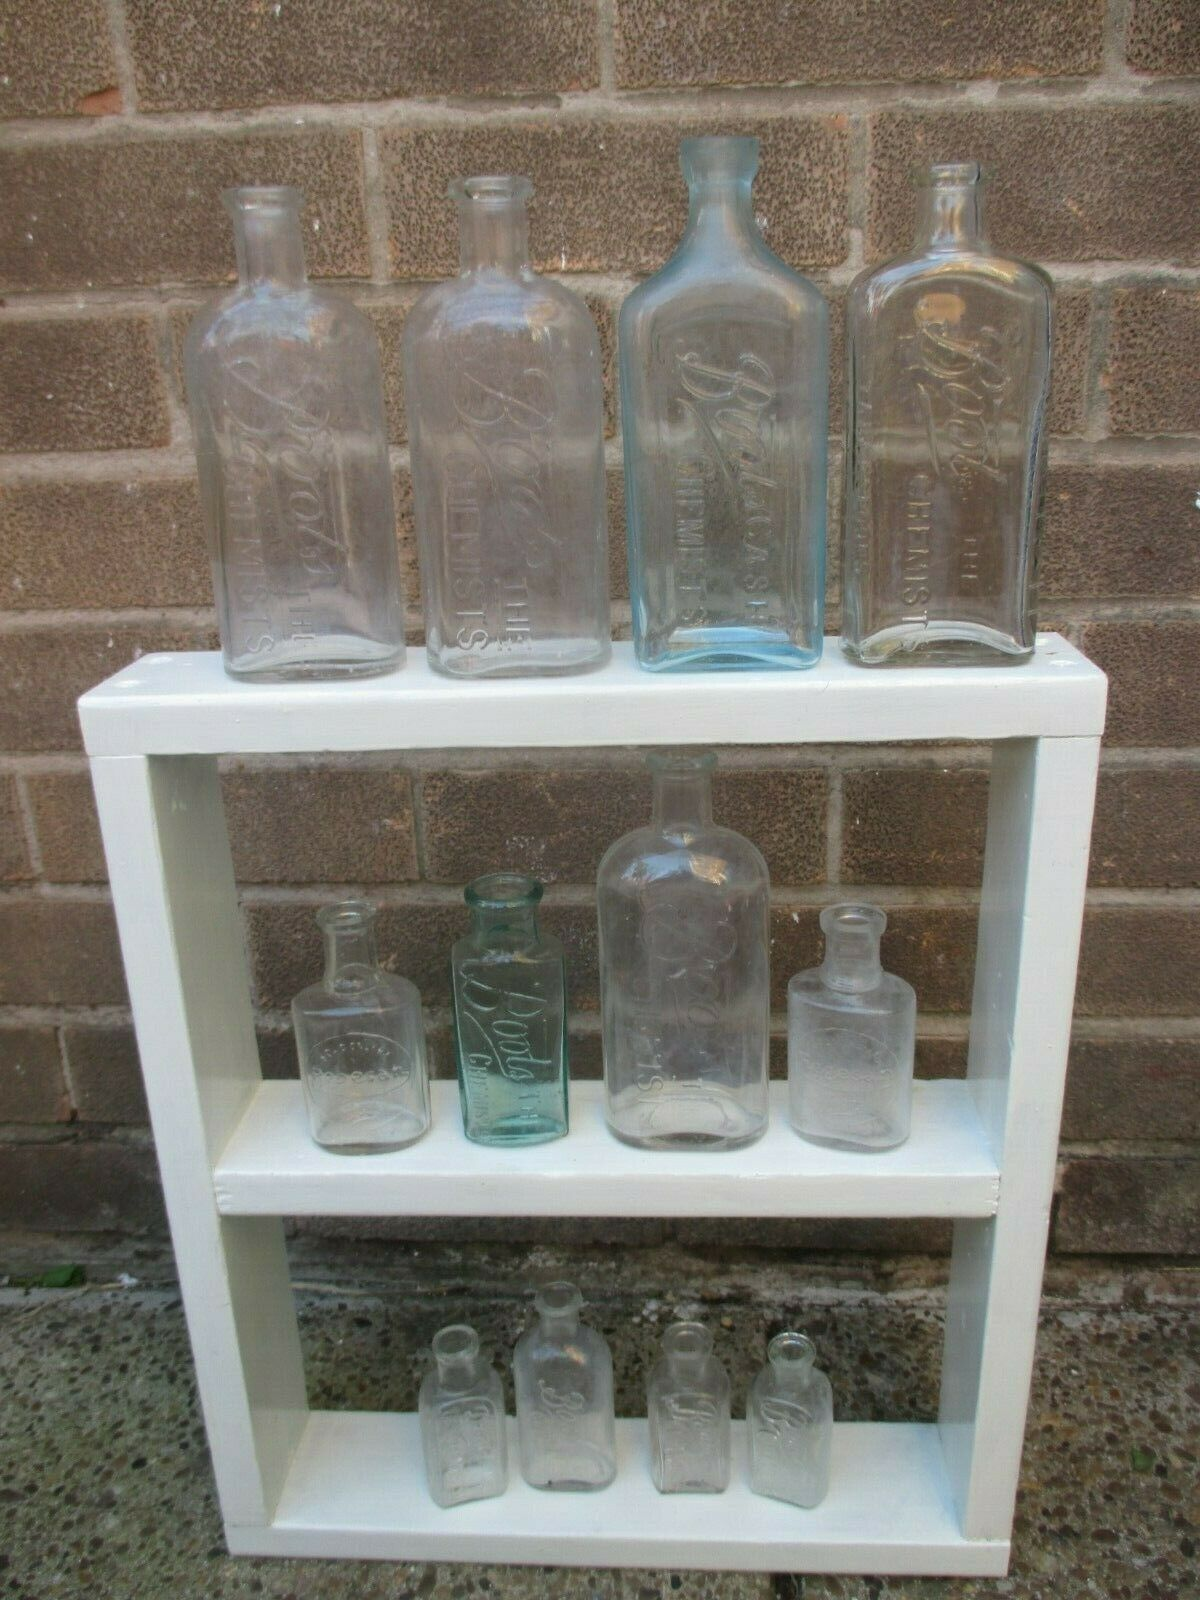 Stiefel CHEMISTS JOB LOT VINTAGE APOTHECARY BOTTLES SMOOTH LIP OLD VASES WEDDING